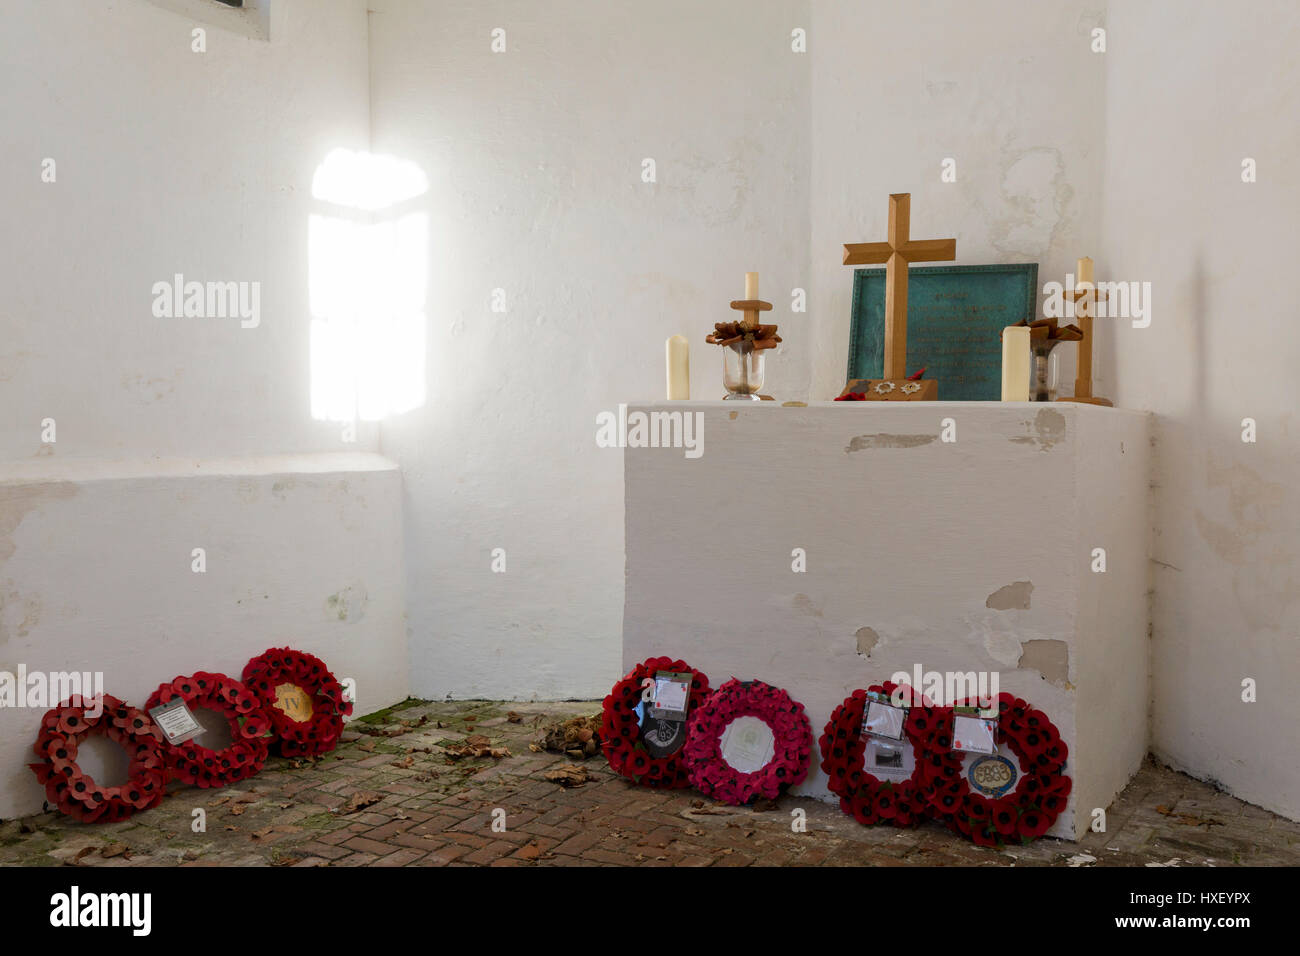 Interior of the Chapel at the strategically-important Hougoumont Farm during the Battle of Waterloo, on 25th March - Stock Image